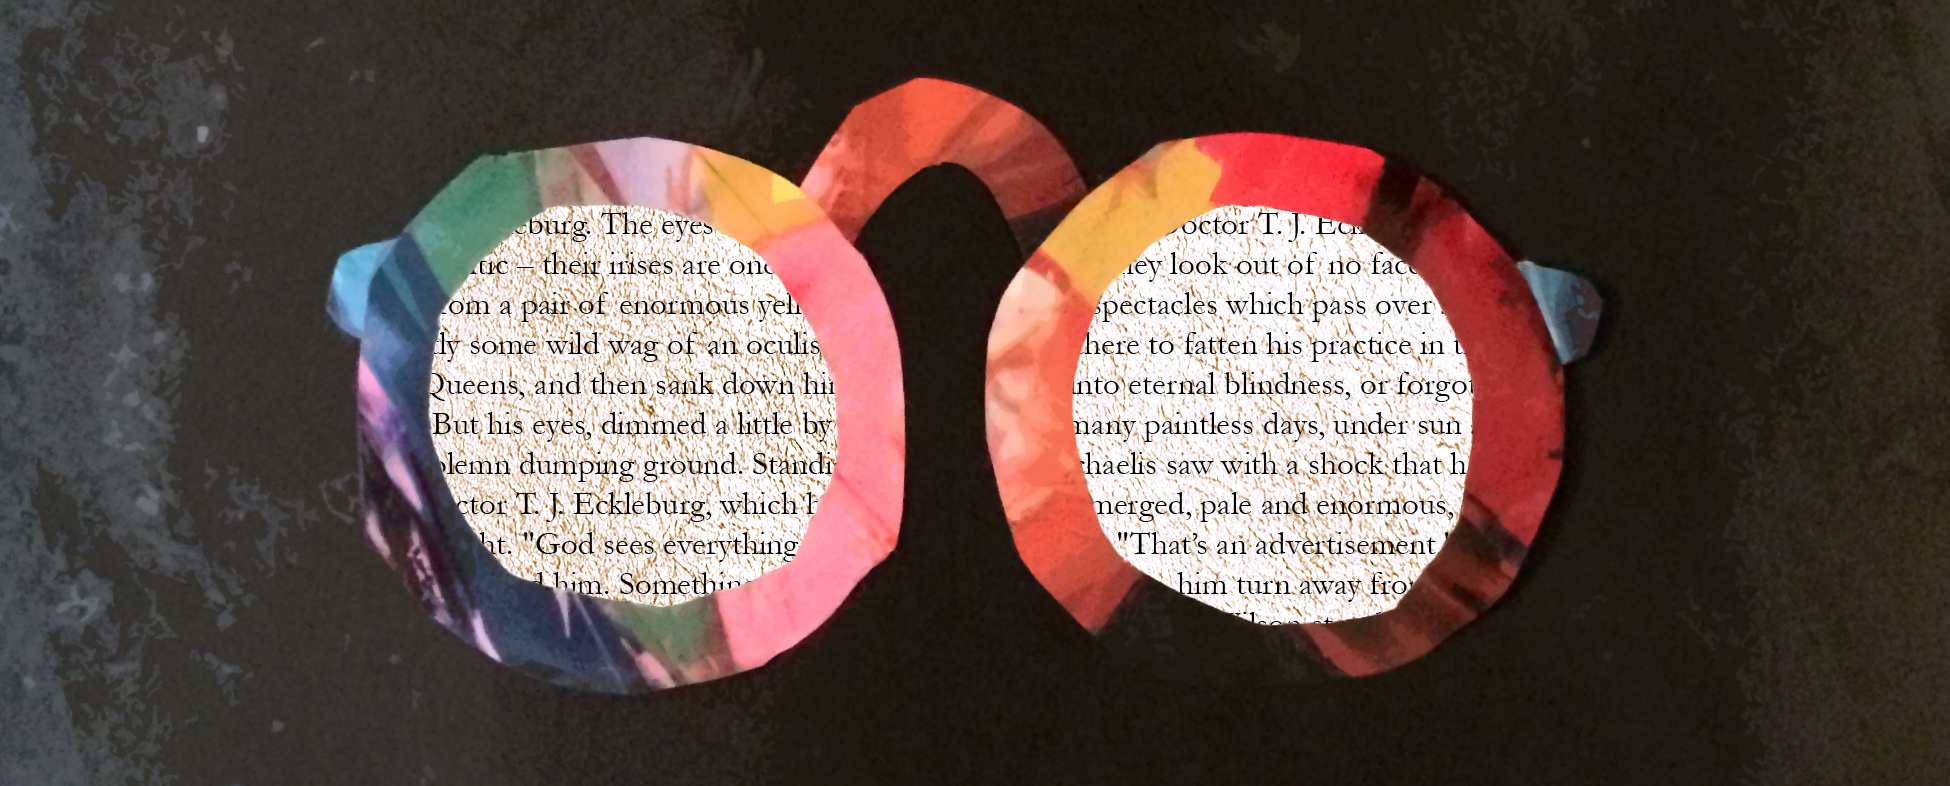 """Detail shot of """"The Great Gatsby"""" cover showing a passage from the novel describing the symbolic god-like eyes of Doctor T.J. Eckleburg encased within a collaged pair of glasses."""